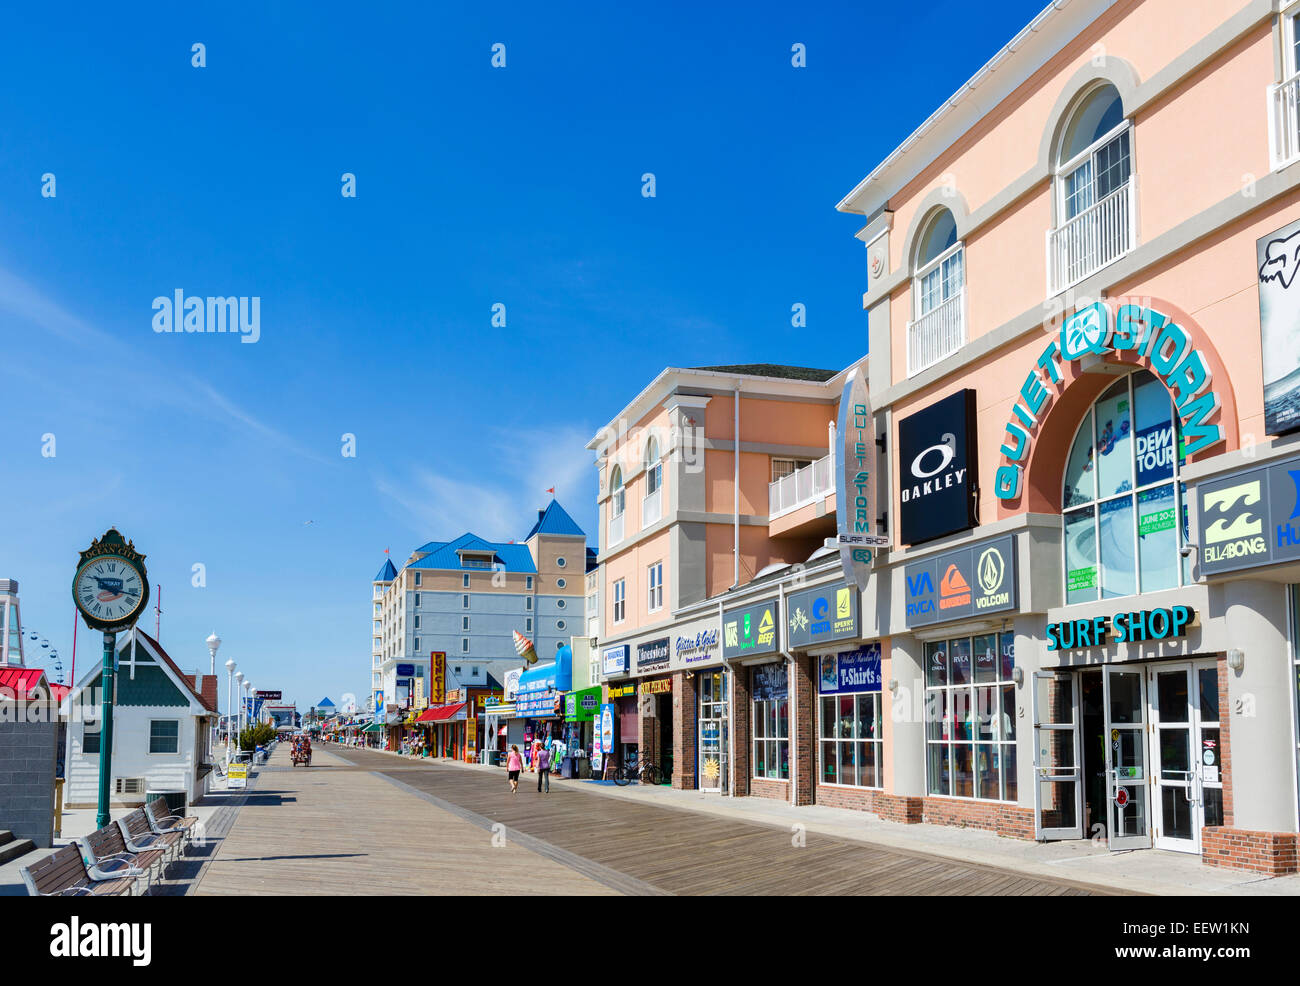 The boardwalk at Ocean City, Maryland, USA - Stock Image